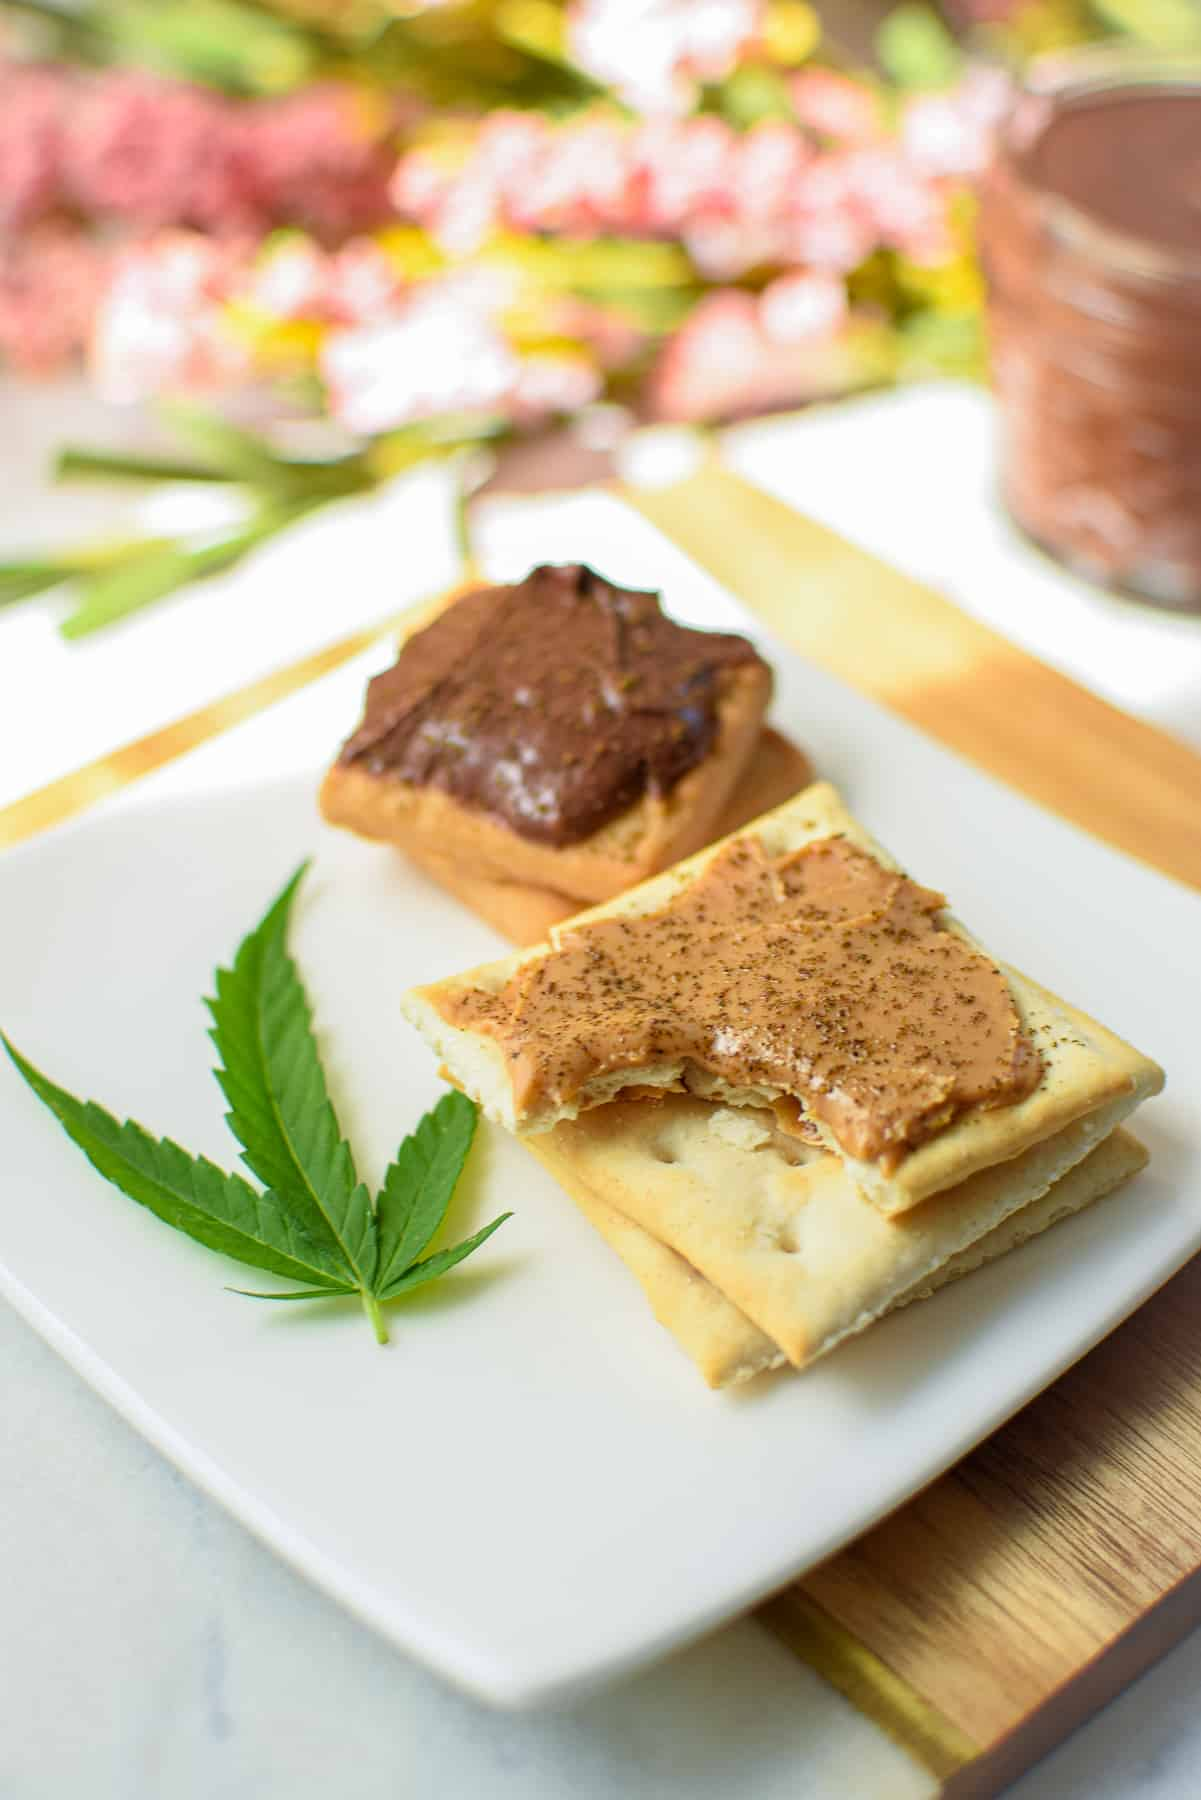 Saltine crackers topped with peanut butter and cannabis and cookies topped with Nutella and cannabis